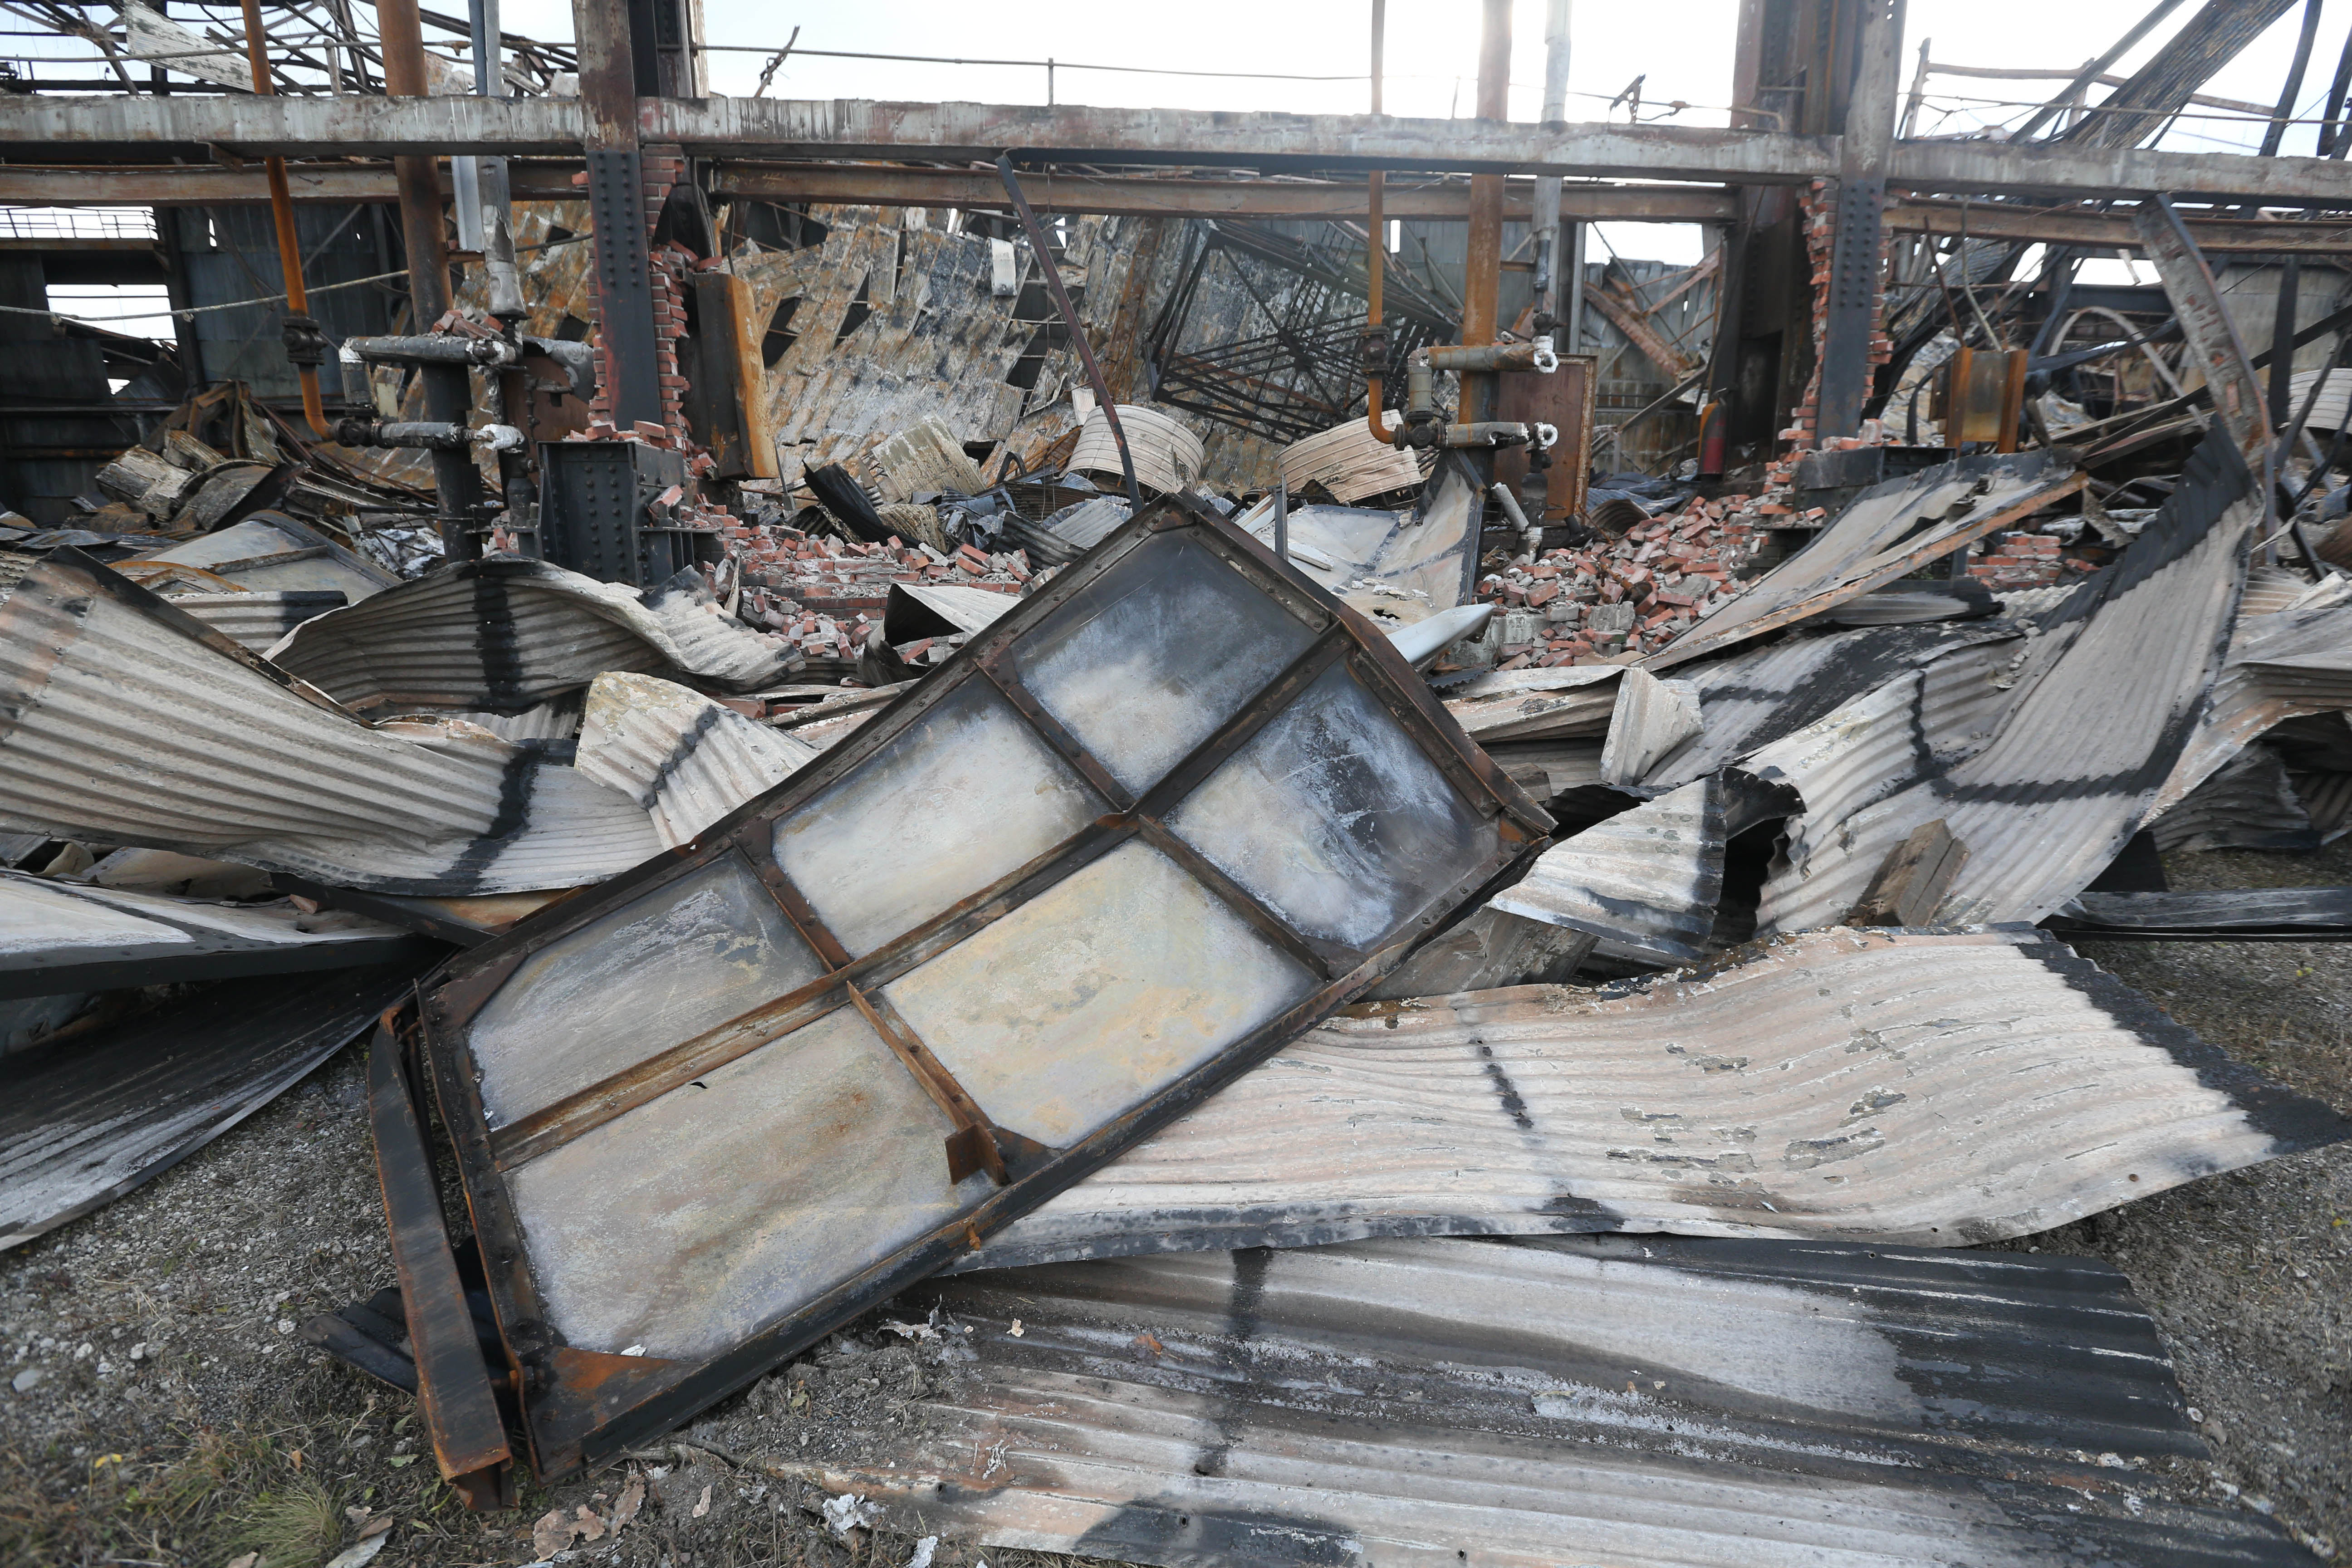 Local officials and the media had an opportunity to walk through the wreckage of the Bethlehem Steel buildings in Lackawanna Nov. 21, 2016. (Sharon Cantillon/Buffalo News file photo)